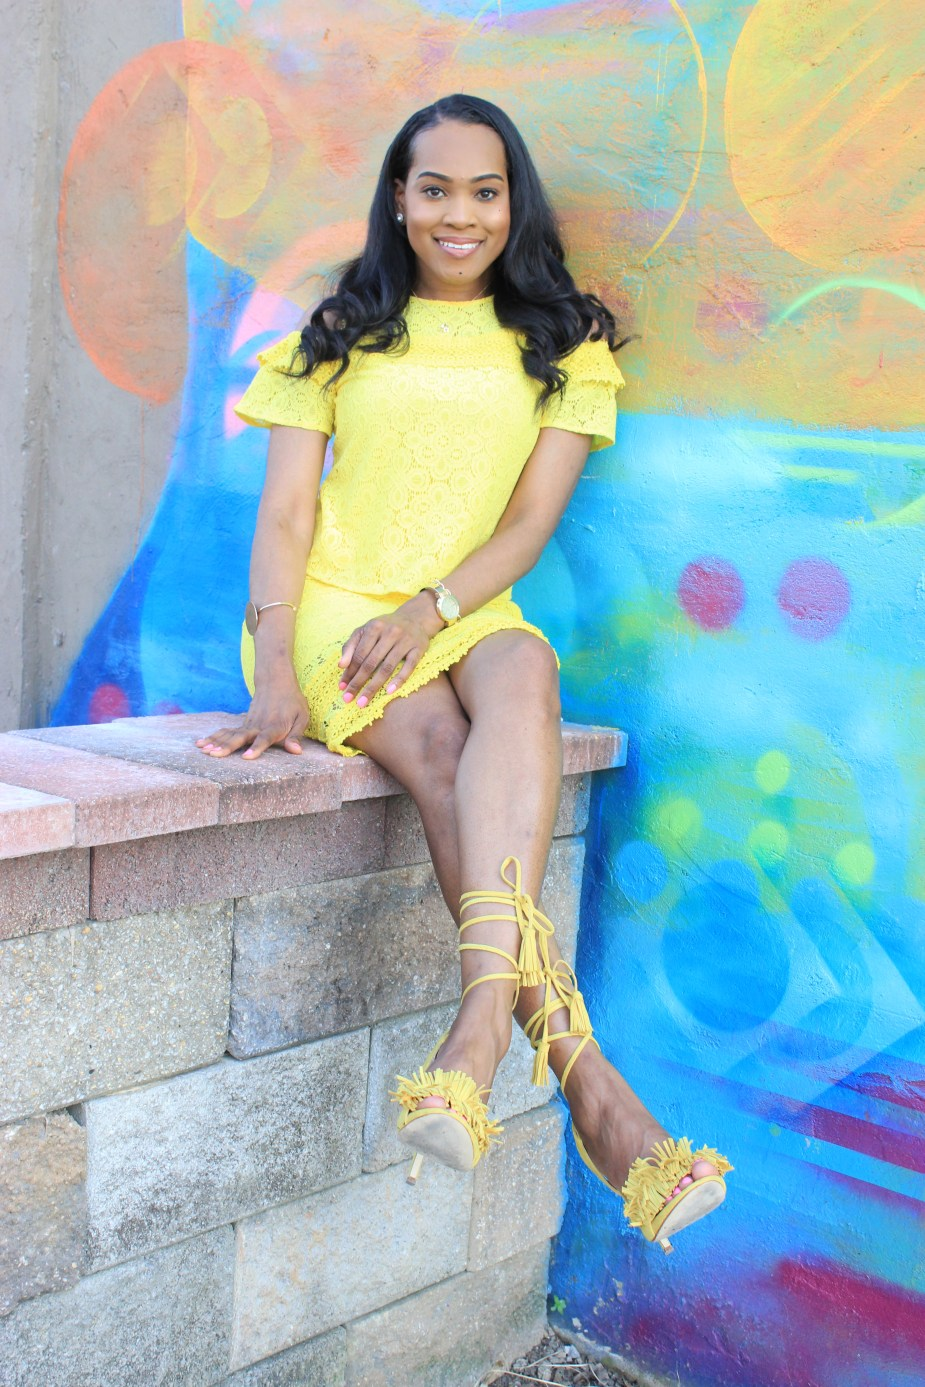 Style-files-JCPenney-Project- Runway Cold -Shoulder-Lace -Top-yellow-lace-pencil-skirt-yellow-fringe-justfab-sandals-Birmingham blogger-top-Birmingham-blogger-oohlalablog-